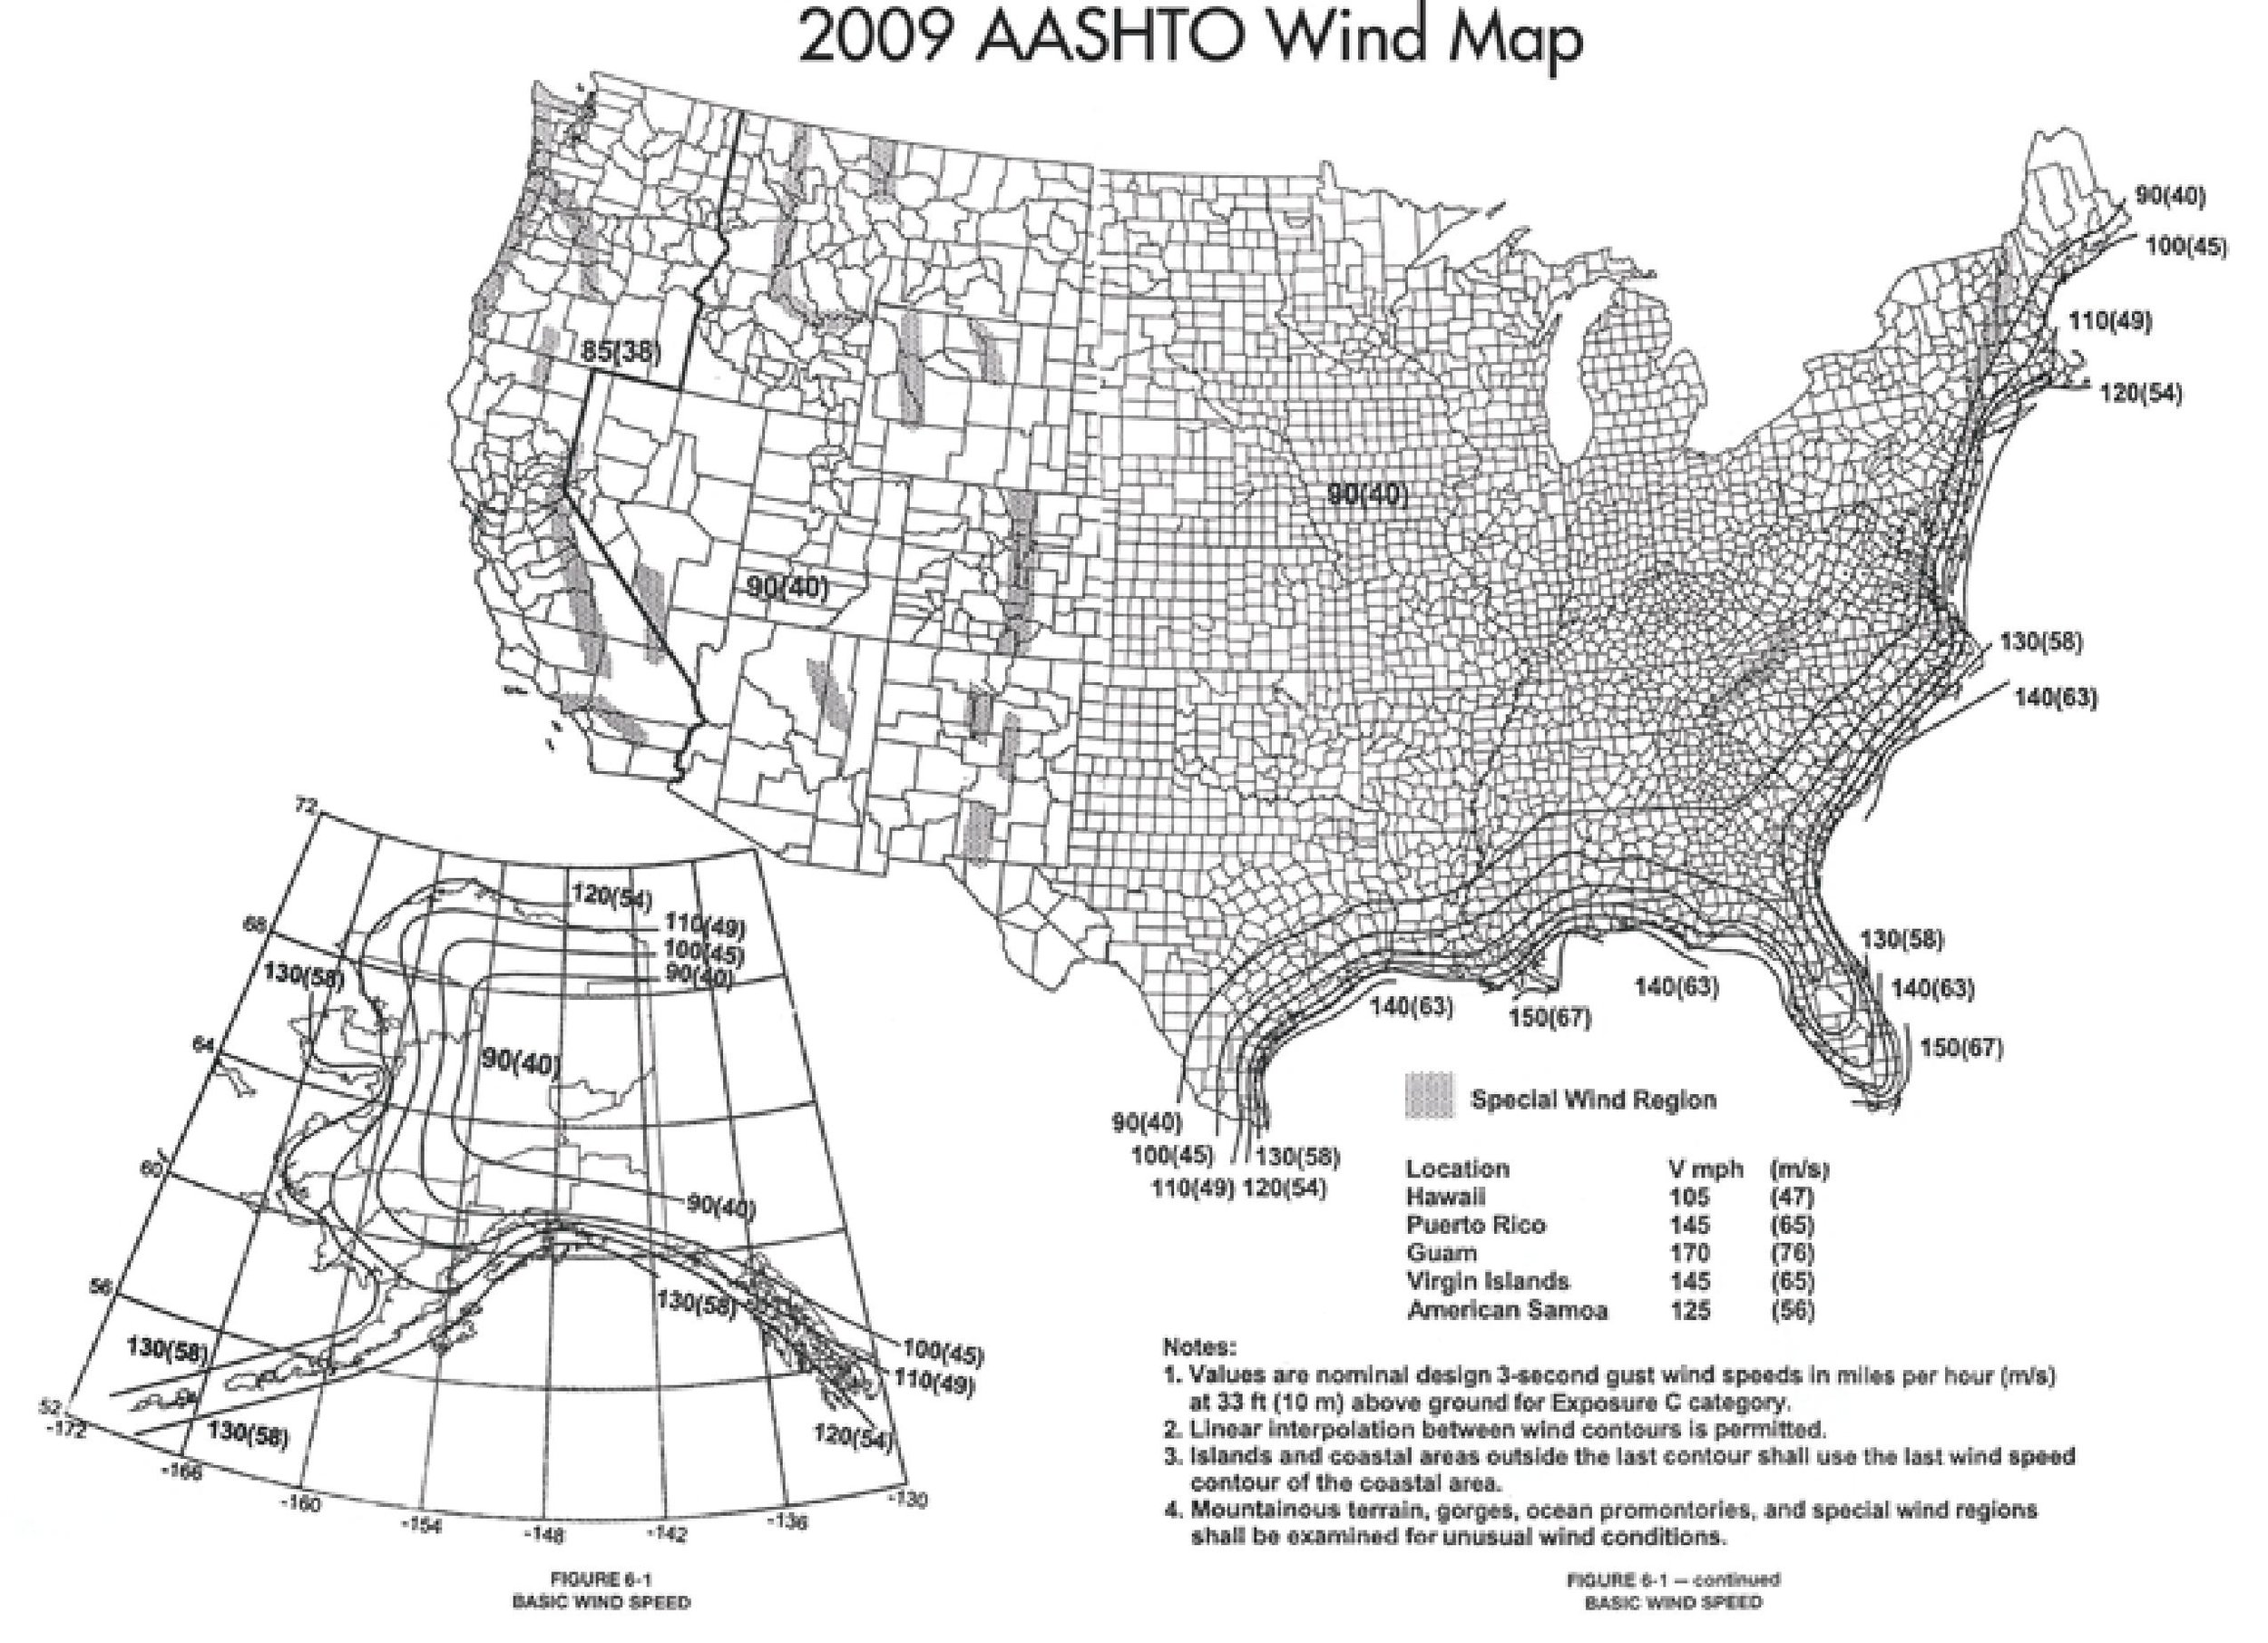 nafco-aashto-2009-wind-map.jpg